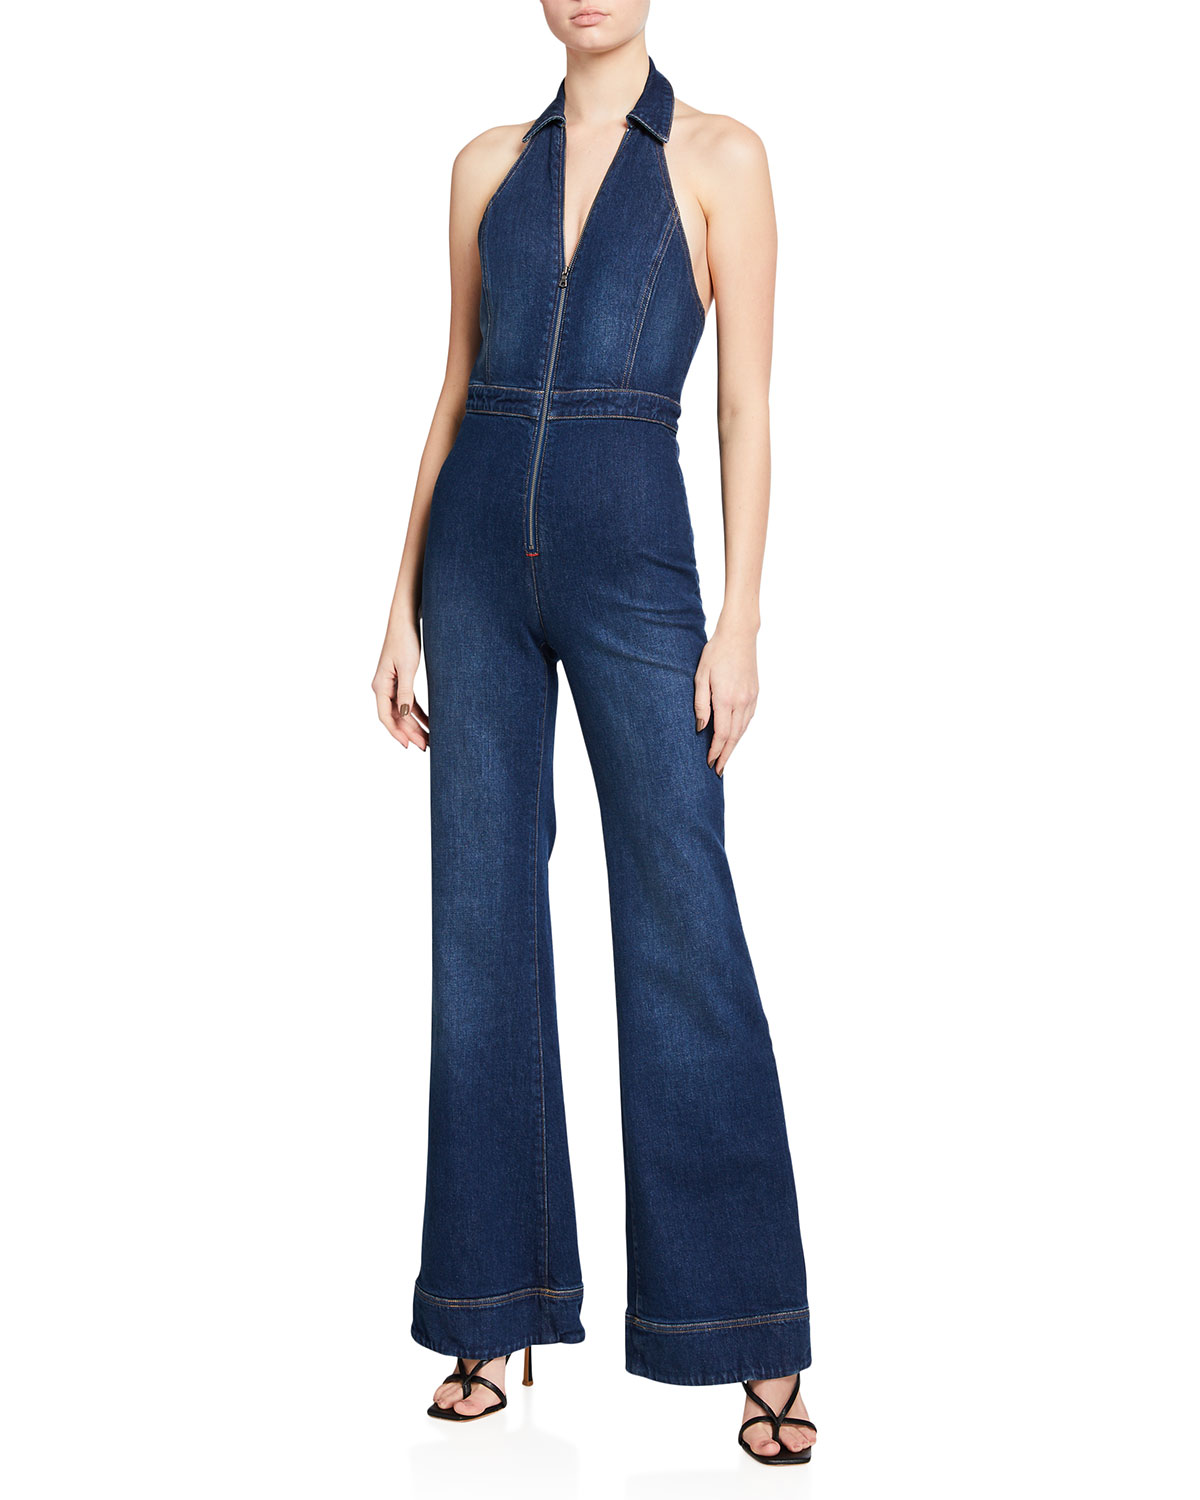 Gorgeous Halter-Neck Fitted Jumpsuit